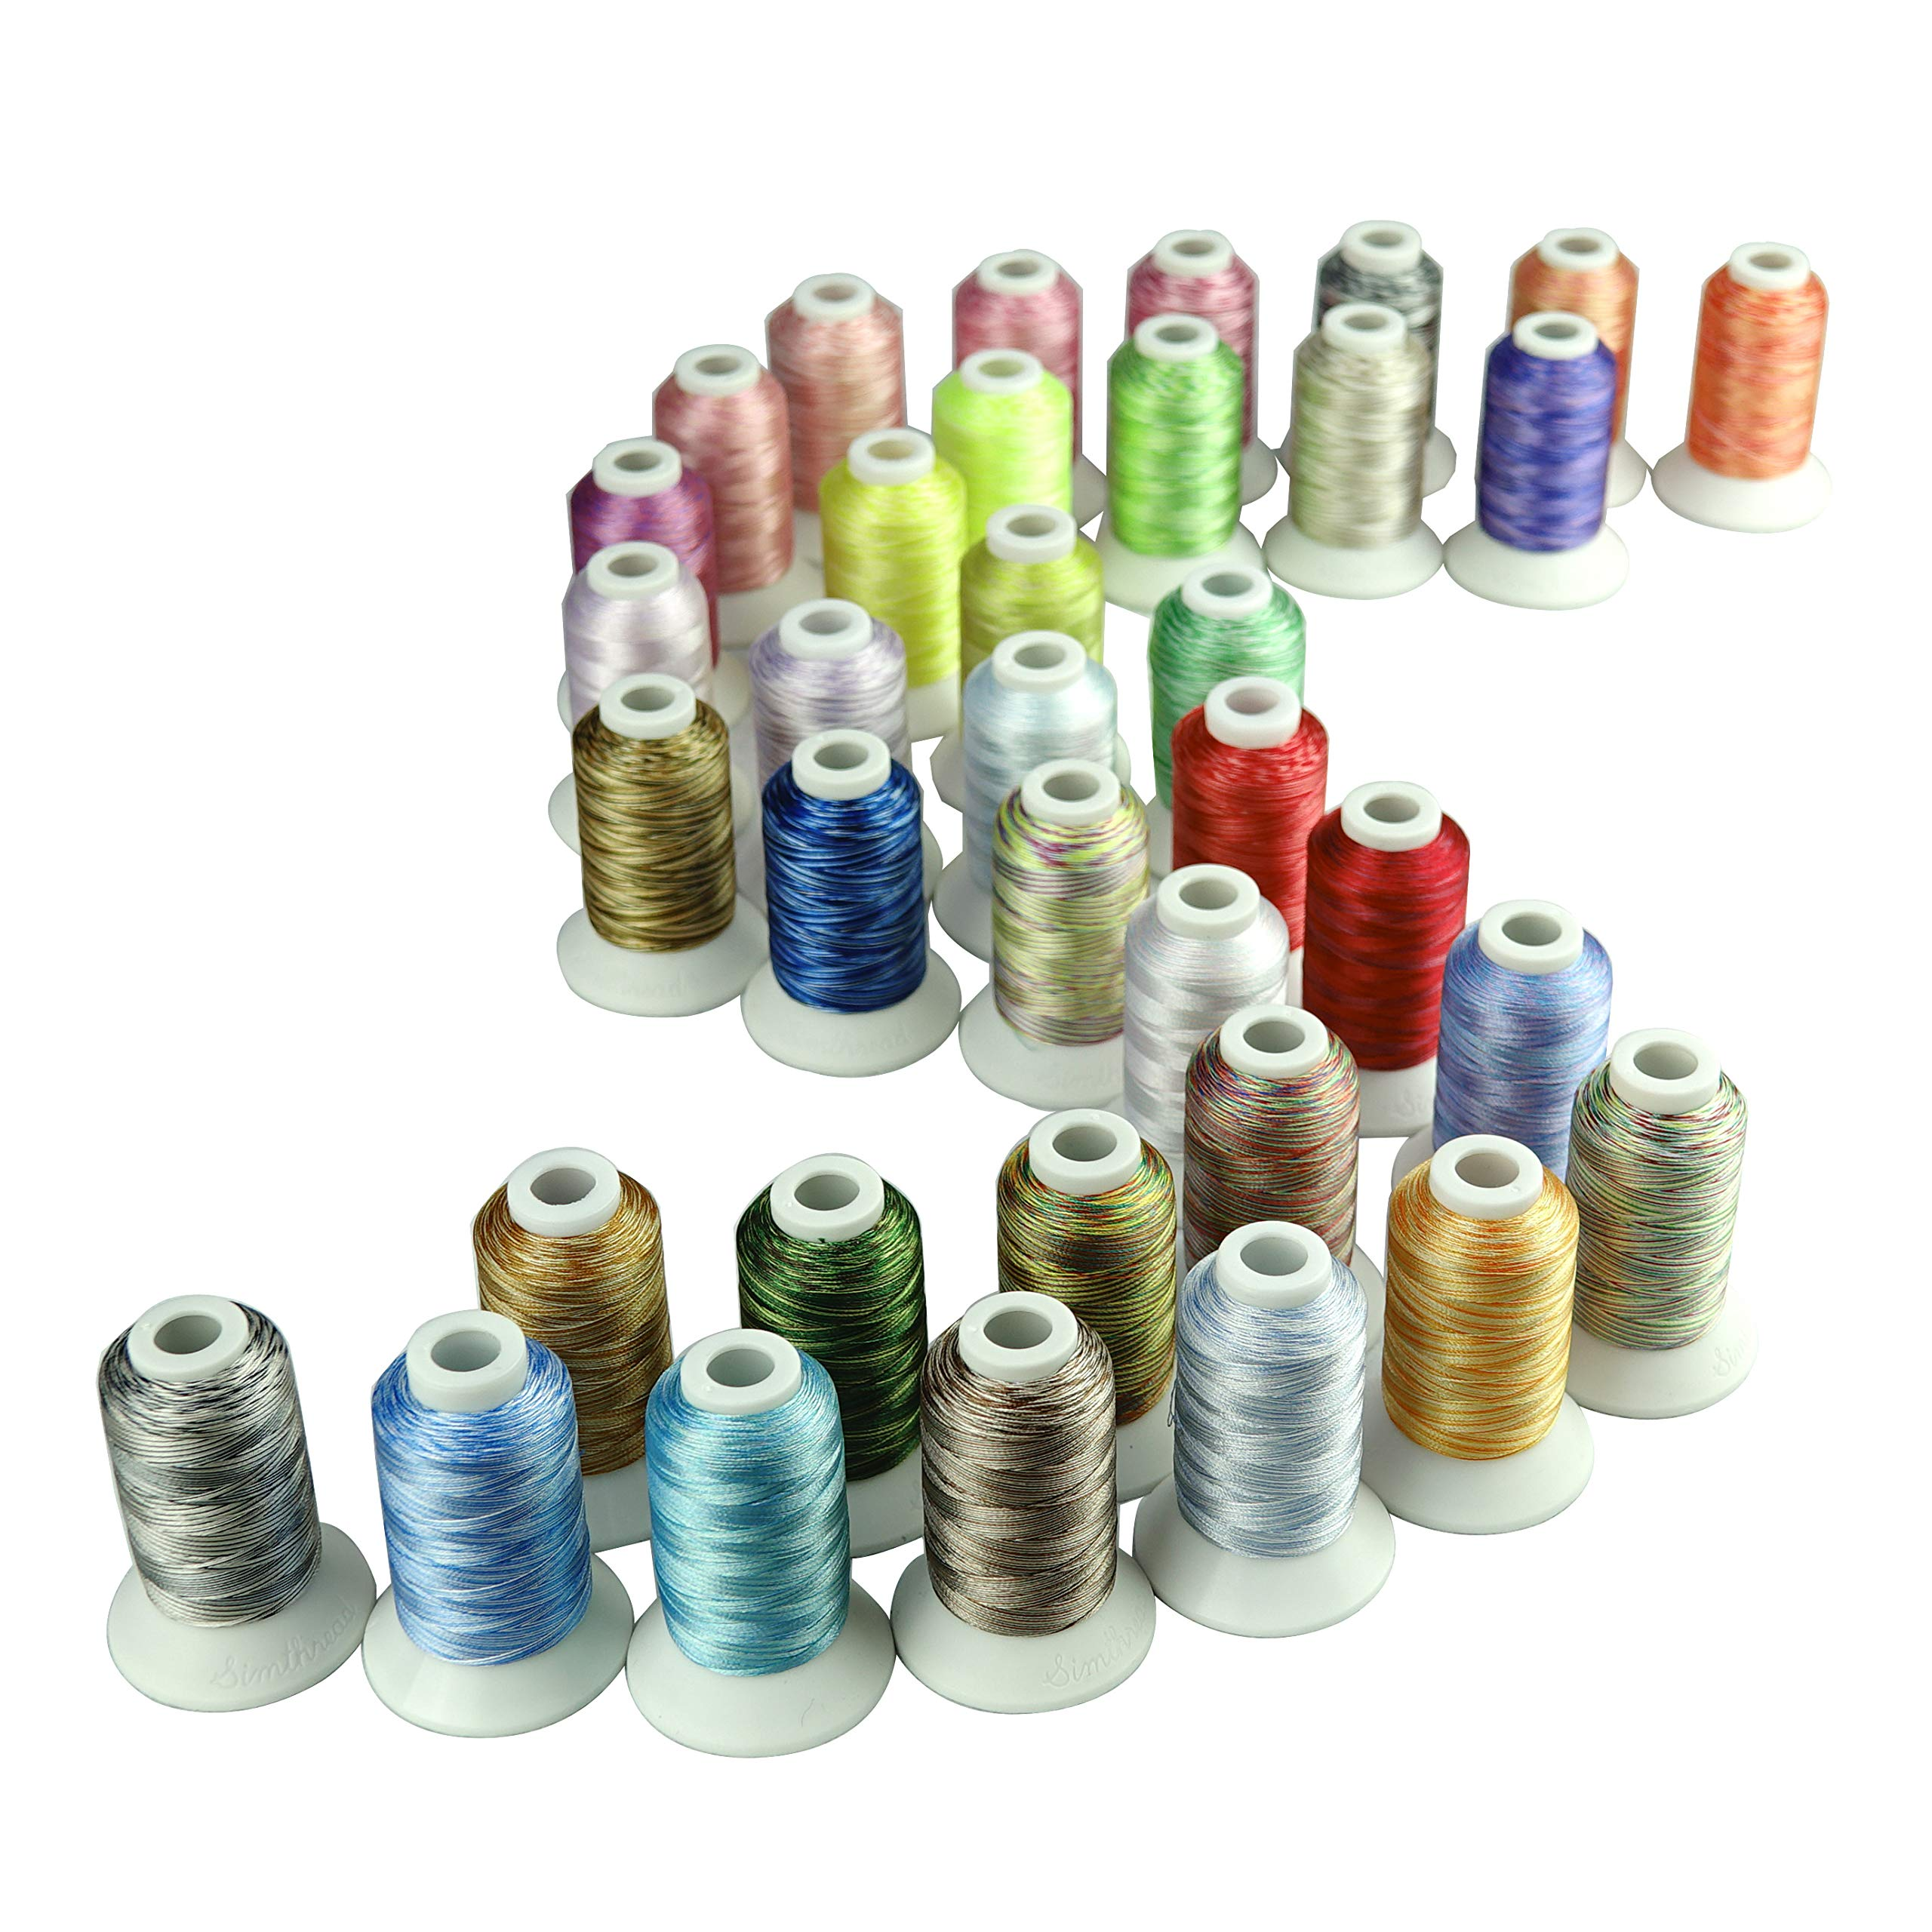 Simthread 5 Options Embroidery Machine Thread Variegated Colors Multi Colors 12 Colors Per Set 550 Yards for Brother Janome Babylock Singer Pfaff Bernina Embroidery and Sewing Machines (36CVA) by Simthread